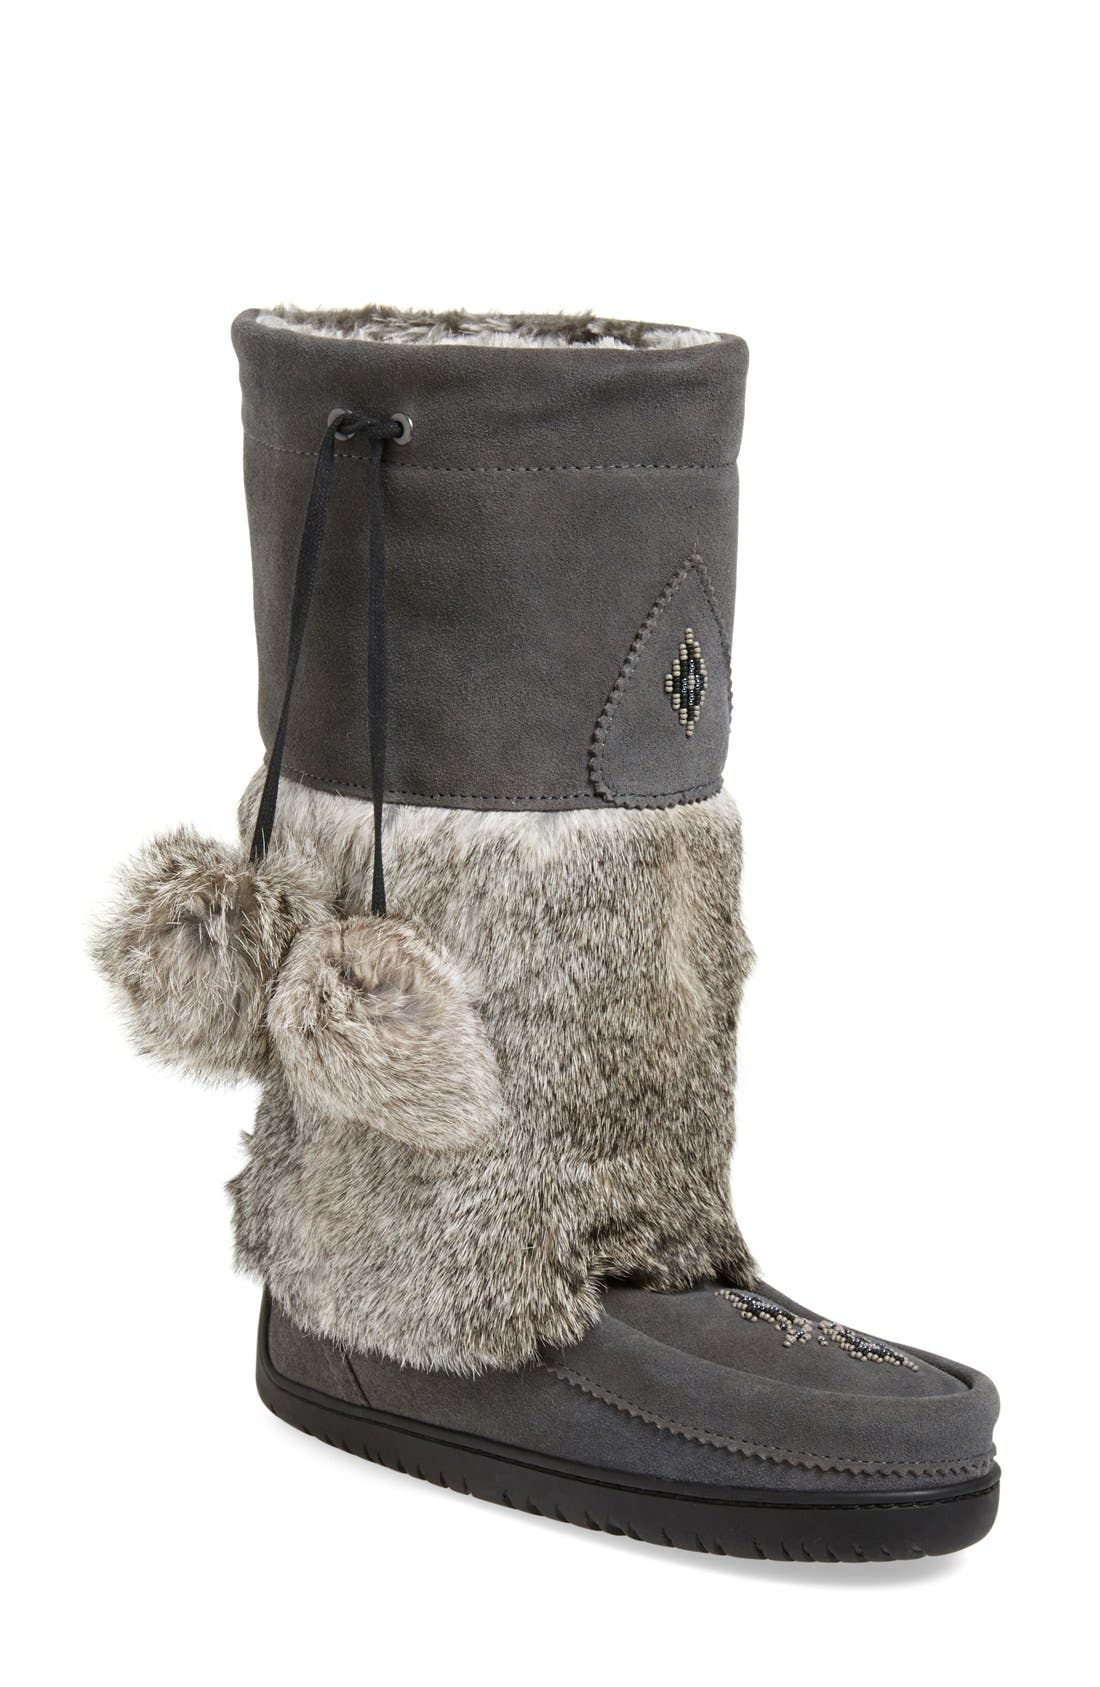 'Snowy Owl' Genuine Fur & Suede Mukluk,                             Main thumbnail 1, color,                             CHARCOAL